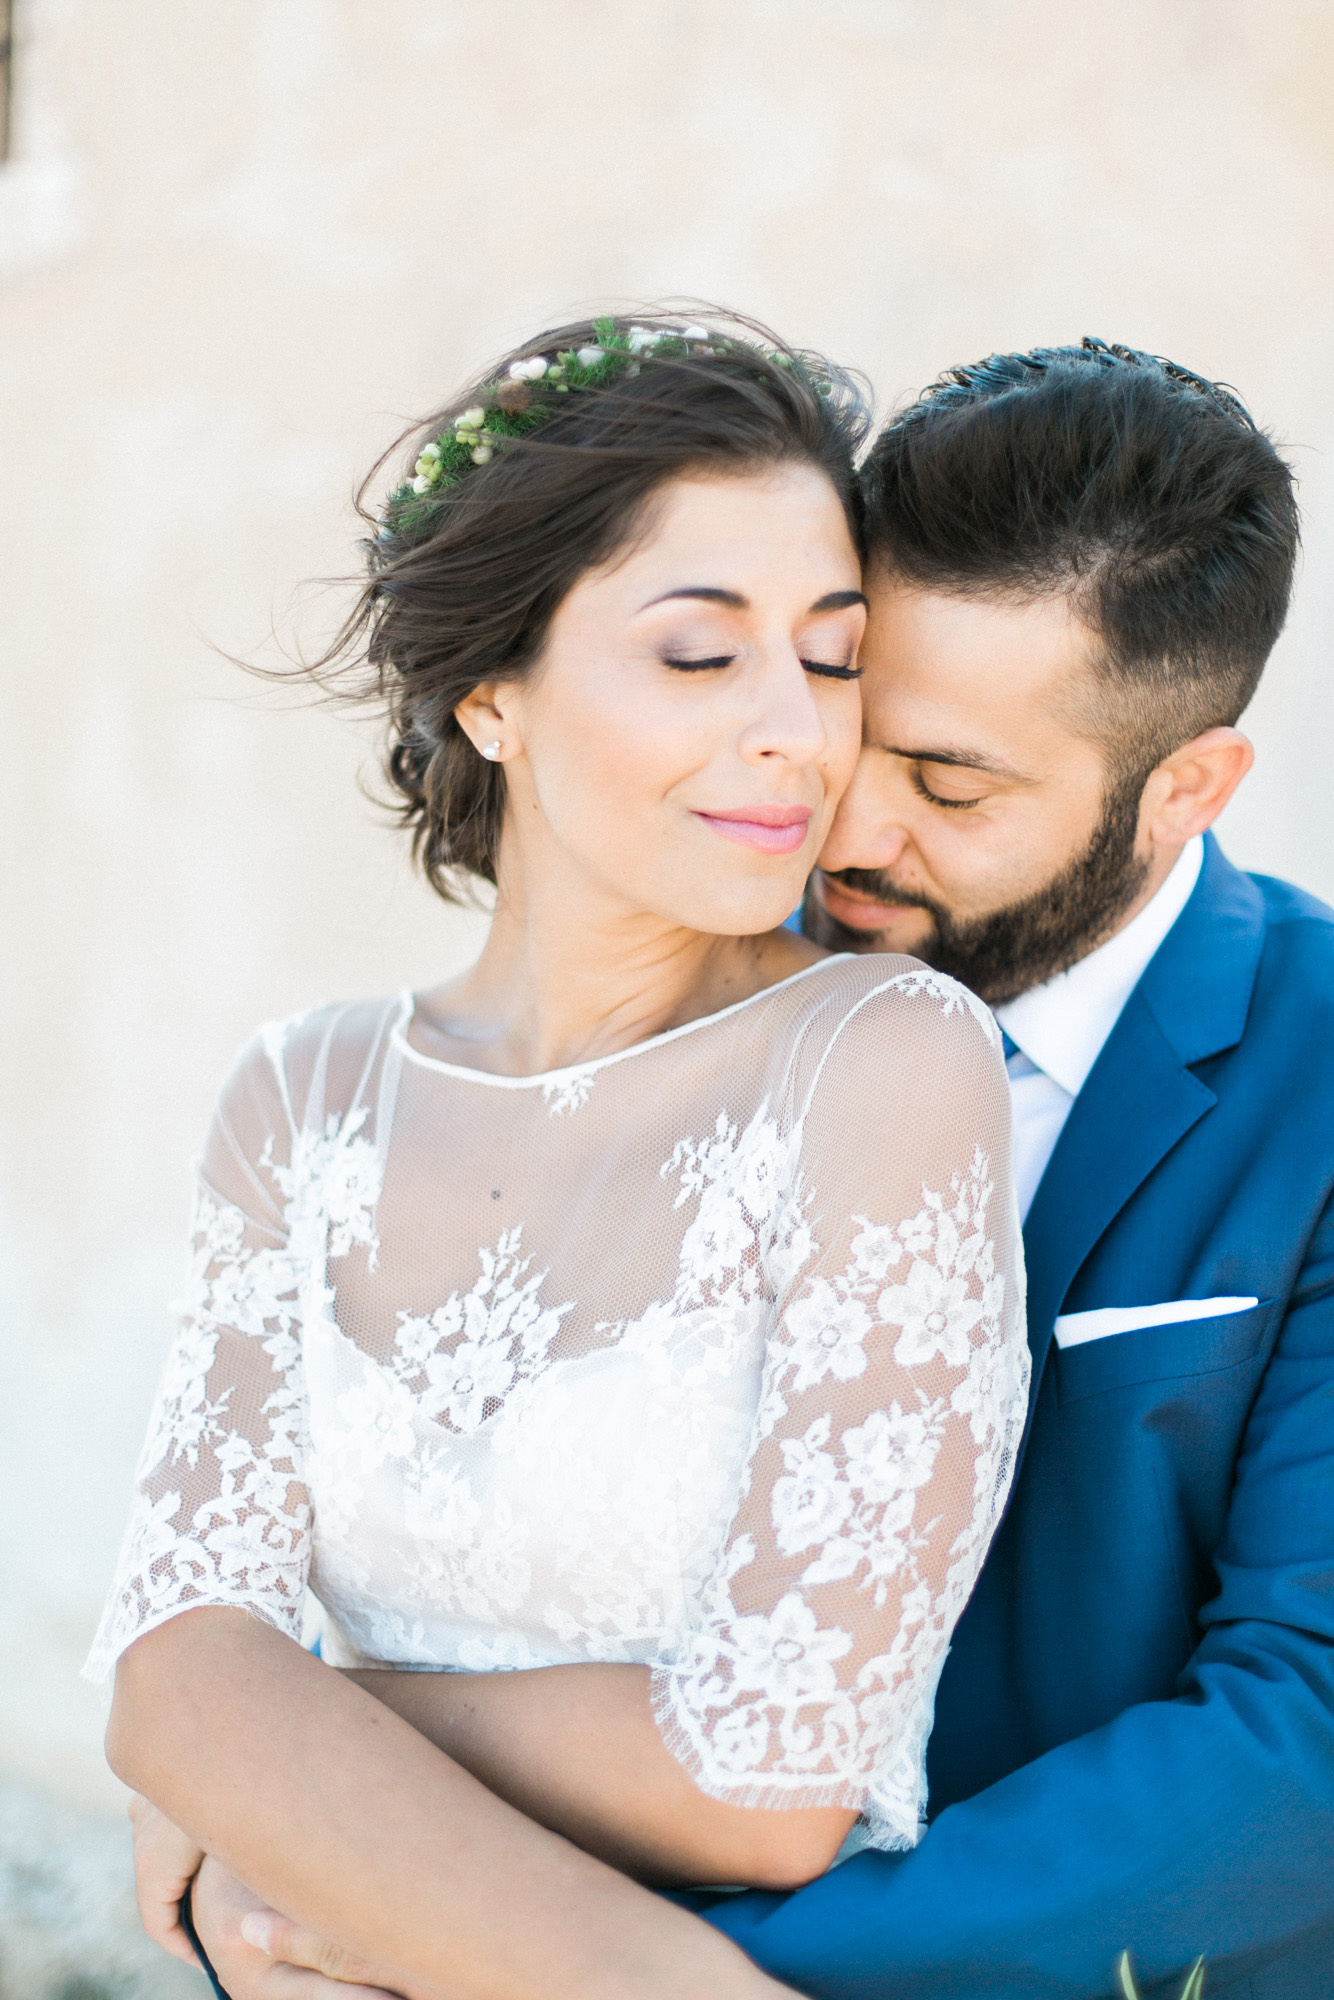 Professional Wedding Photosession In Crete Closeup Portrait Of Bride And Groom Posing With Spinalonga Island